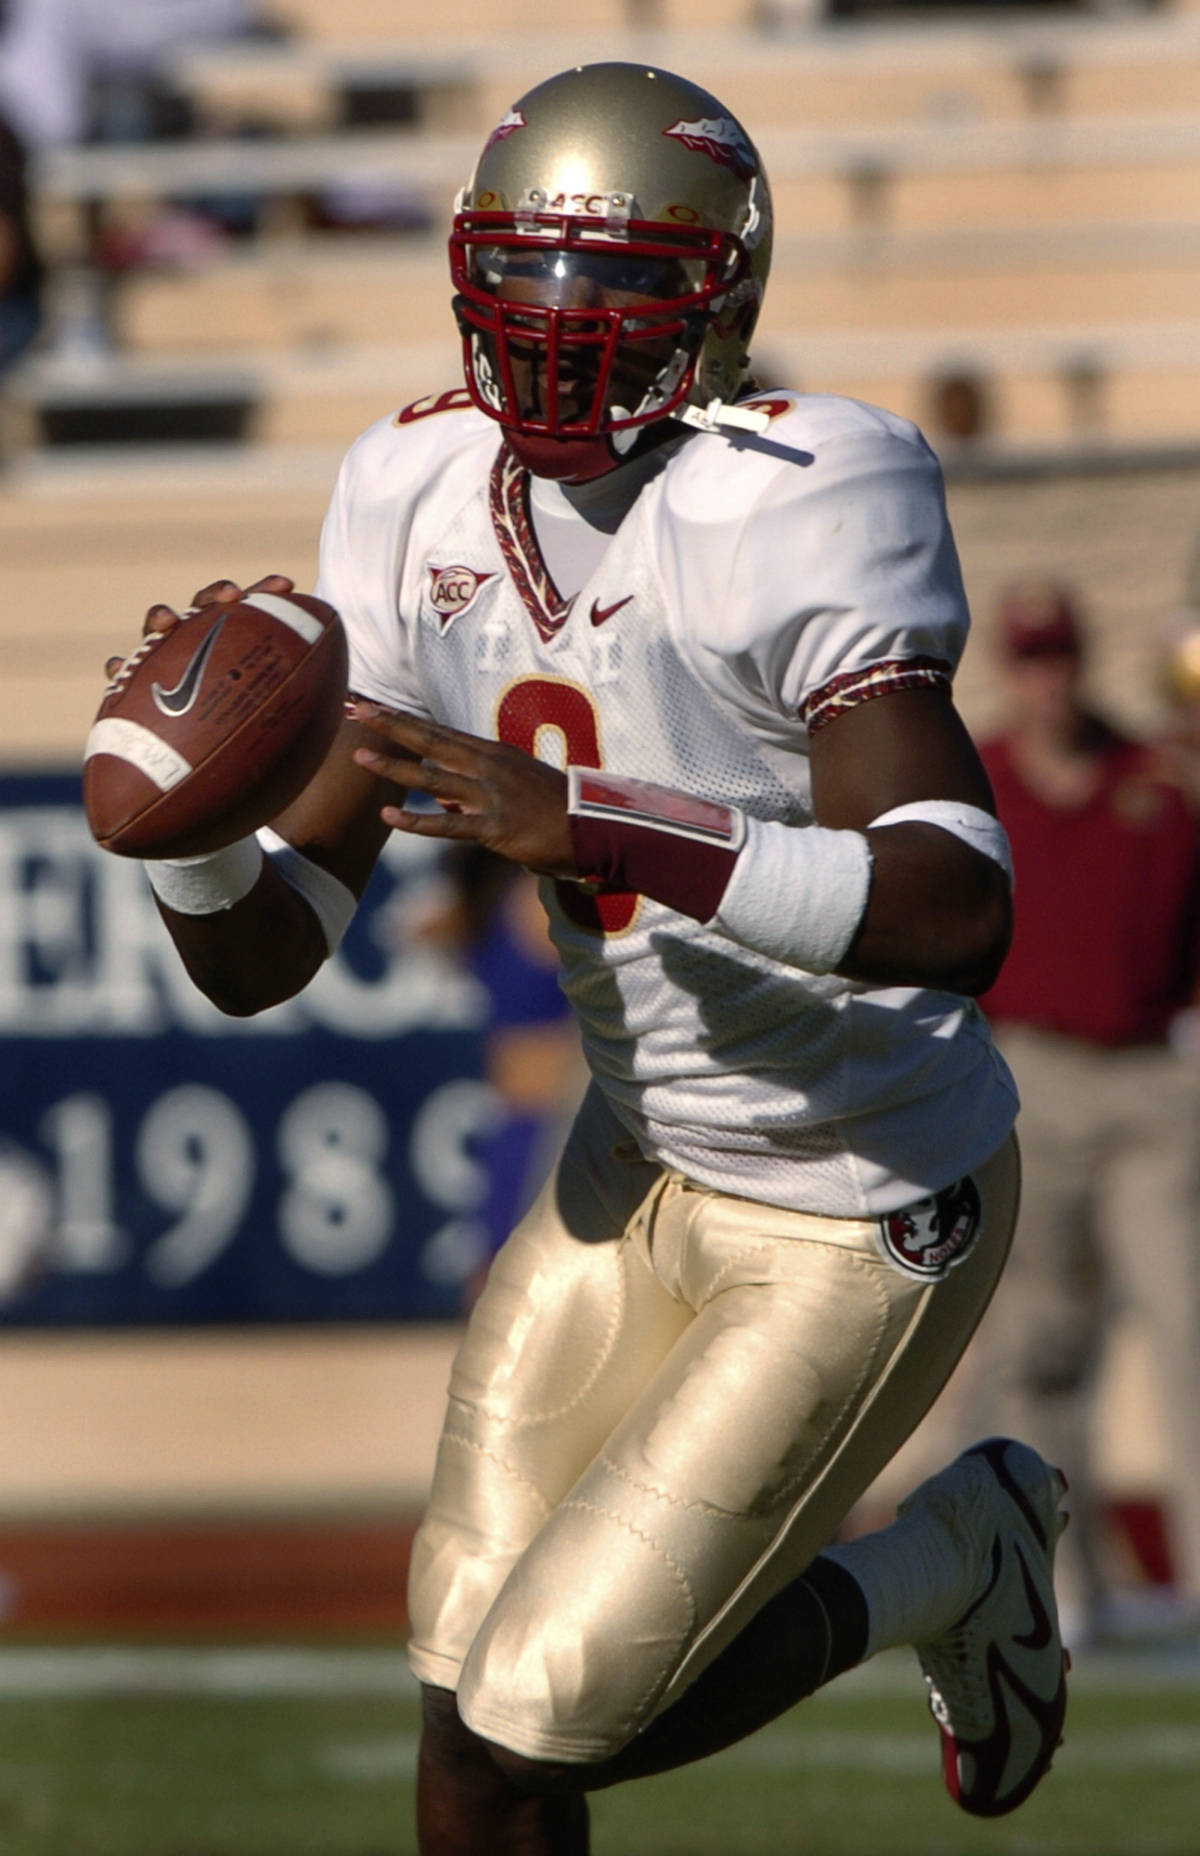 Florida State quarterback Xavier Lee looks to pass in the second half during a college football game, Saturday, Oct. 14, 2006, in Durham, N.C. Florida State defeated Duke 51-24. (AP Photo/Sara D. Davis)